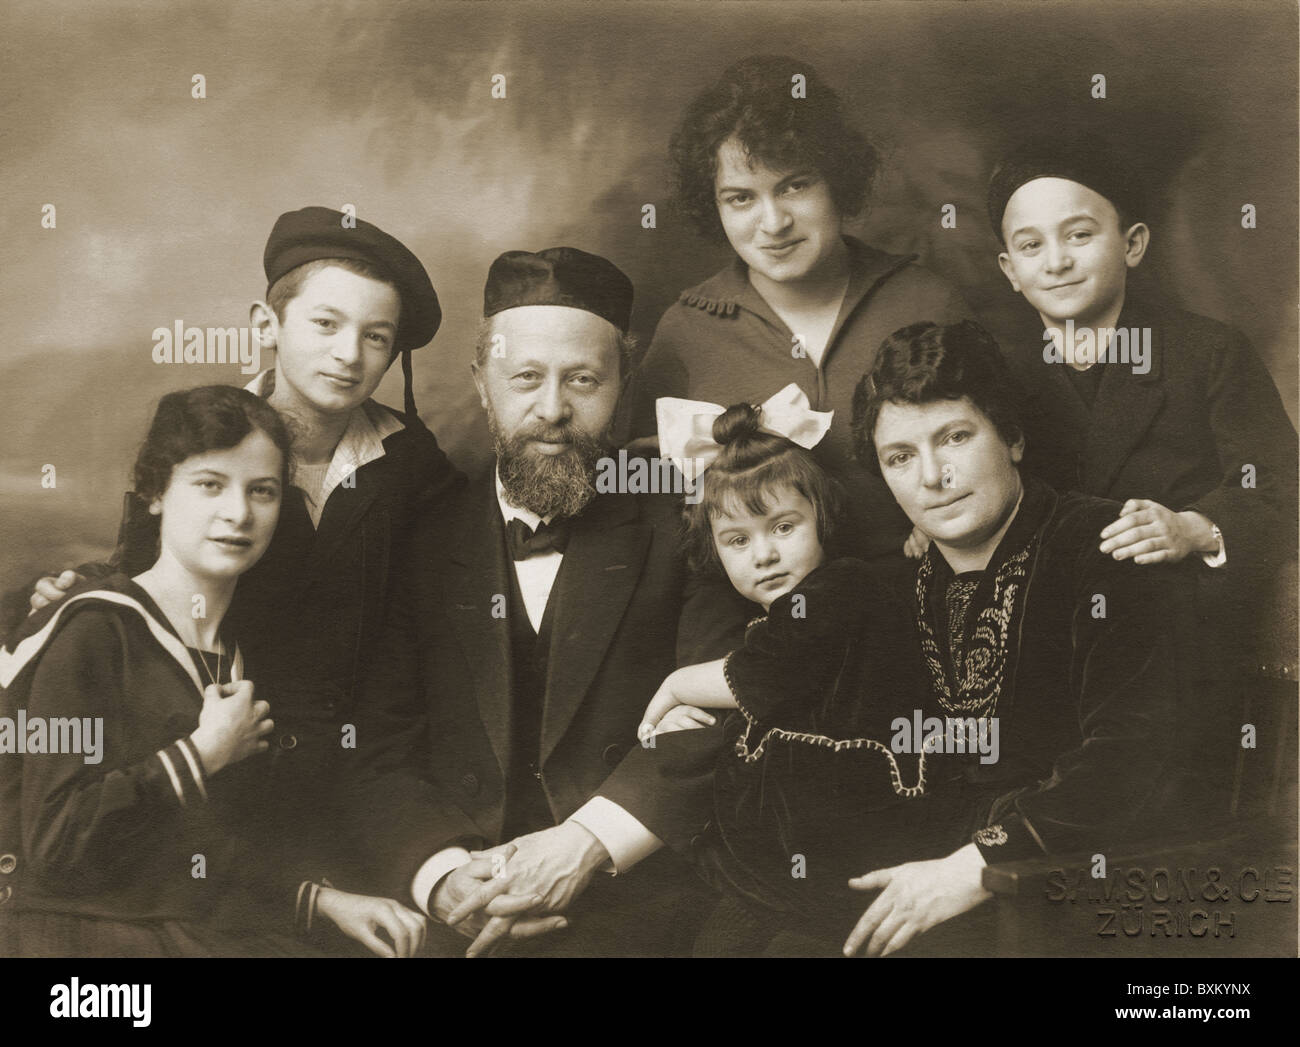 people, family, Jewish family, group picture, Switzerland, circa 1910, 1910s, 10s, 20th century, historic, historical, - Stock Image